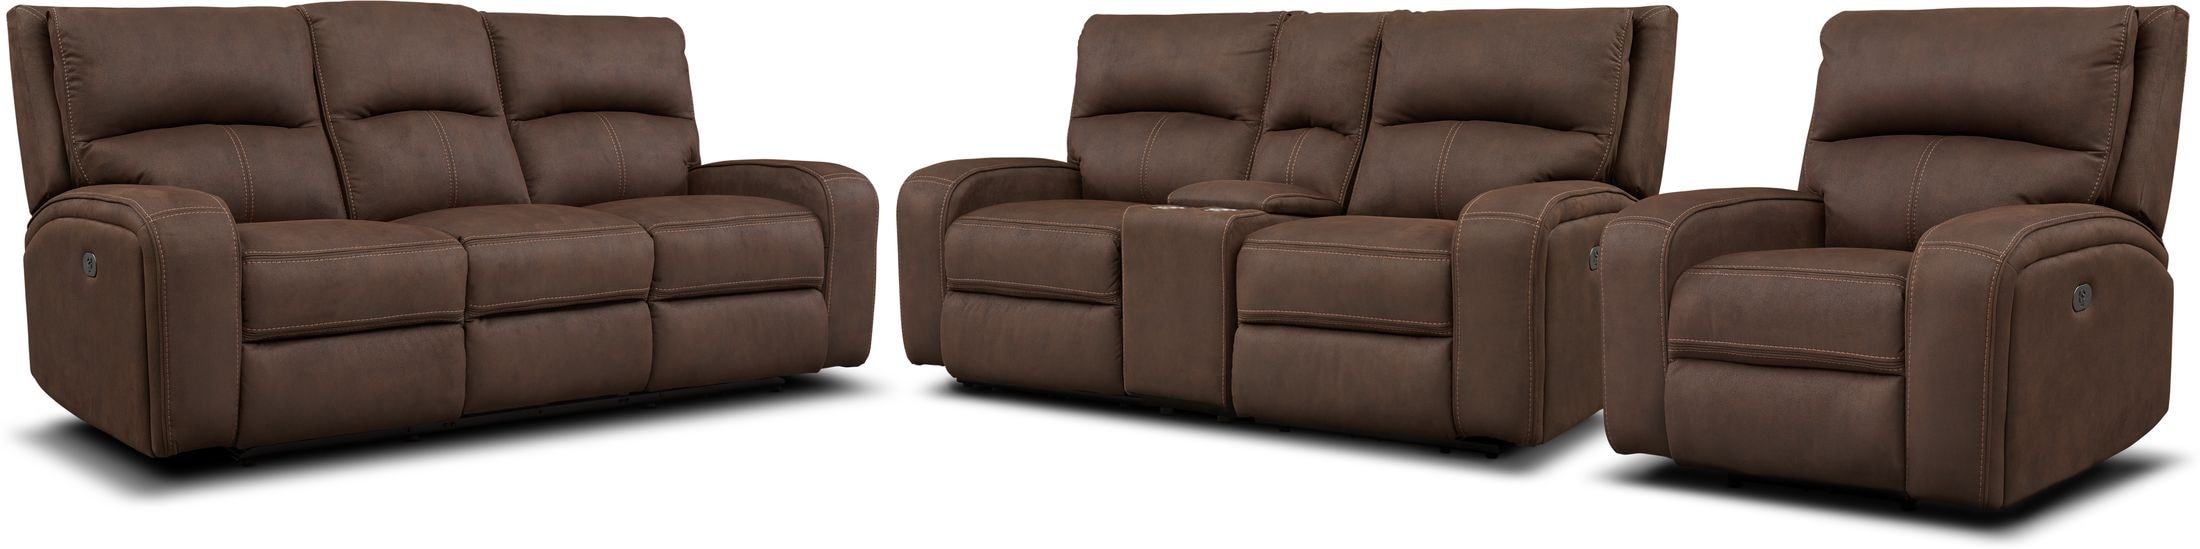 Living Room Furniture - Burke Dual-Power Reclining Sofa, Loveseat with Console and Recliner